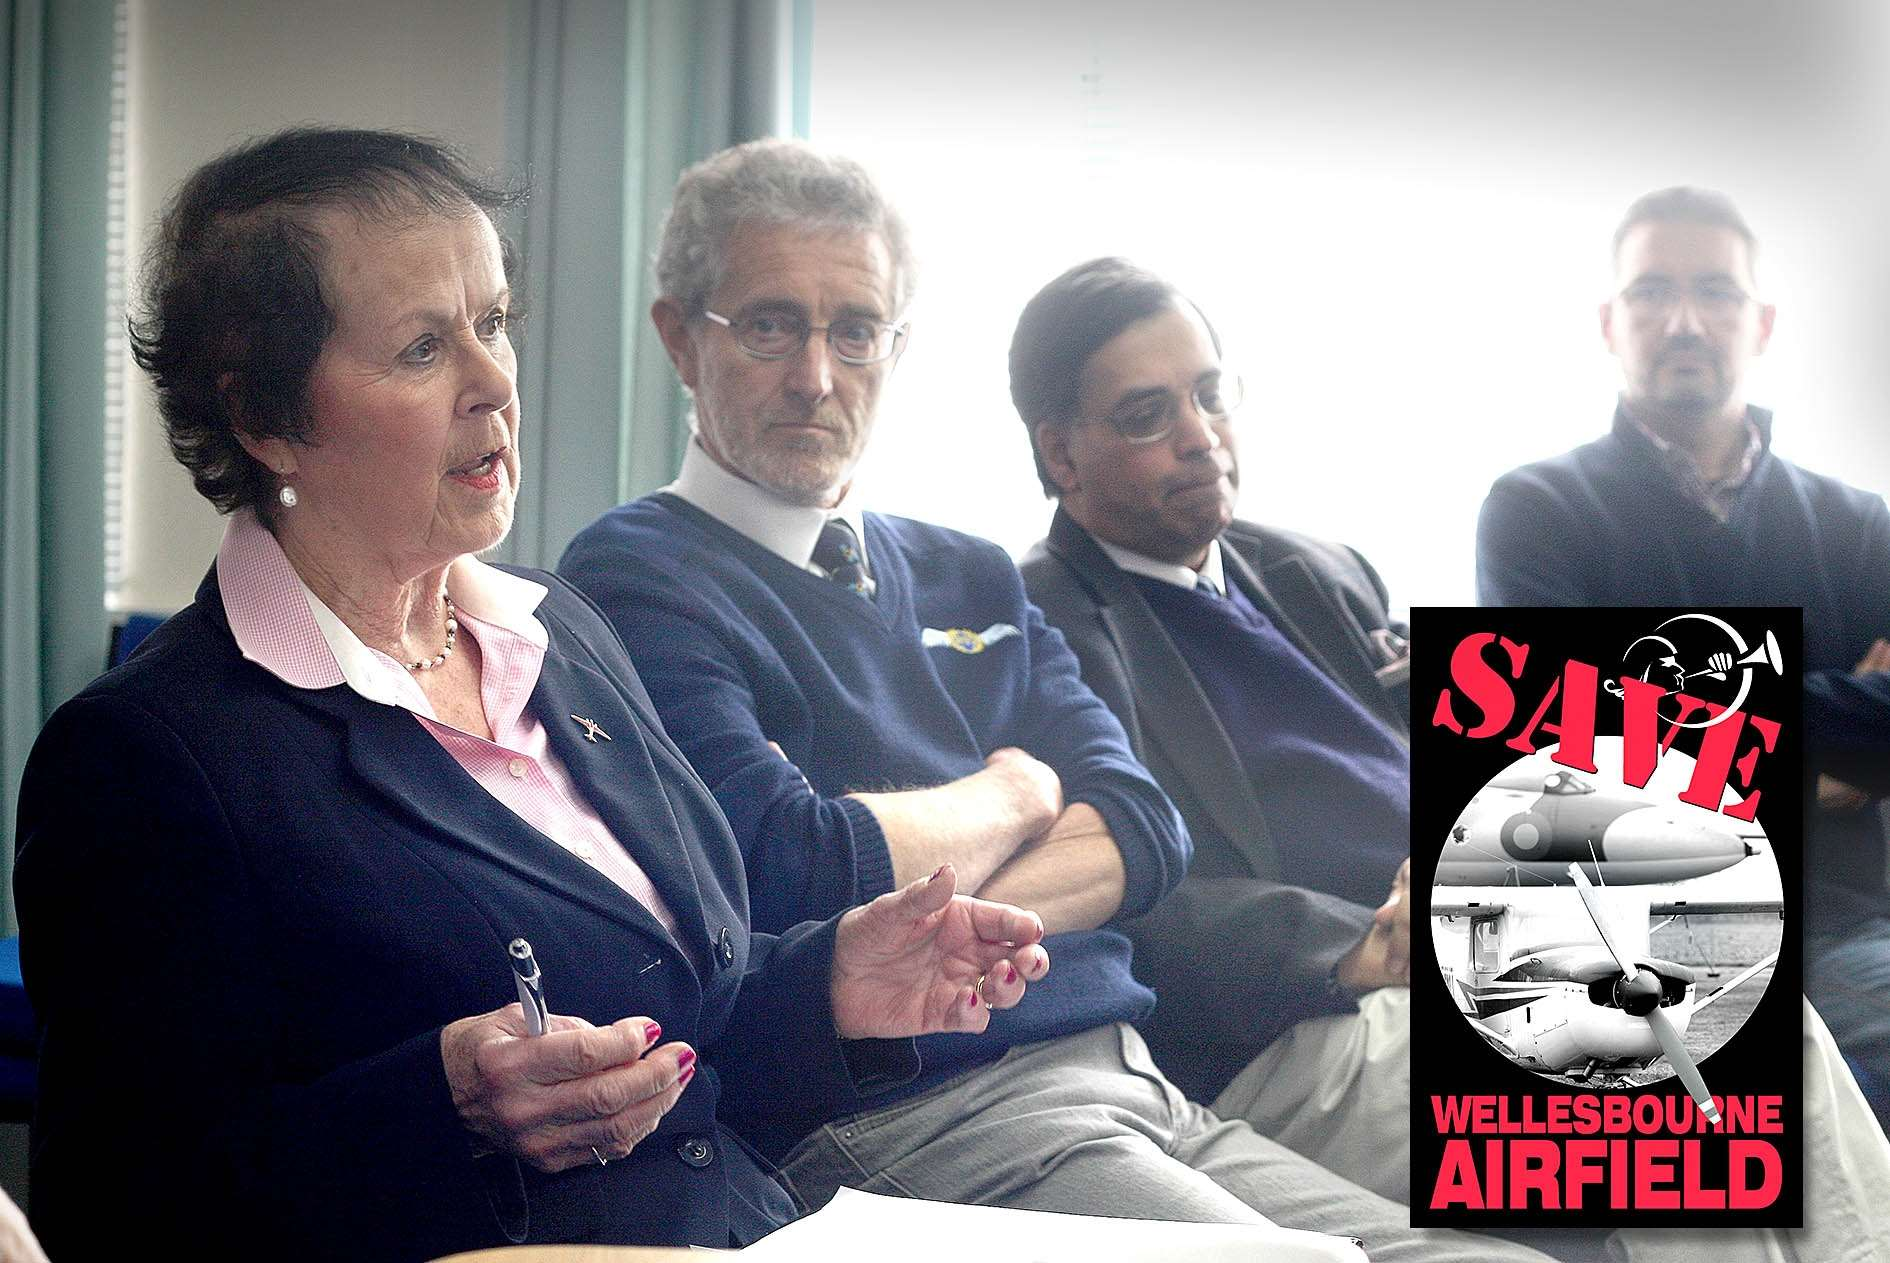 Wellesbourne Airfield business owners and staff gave their views at the press conference this morning. Photo: Mark Williamson